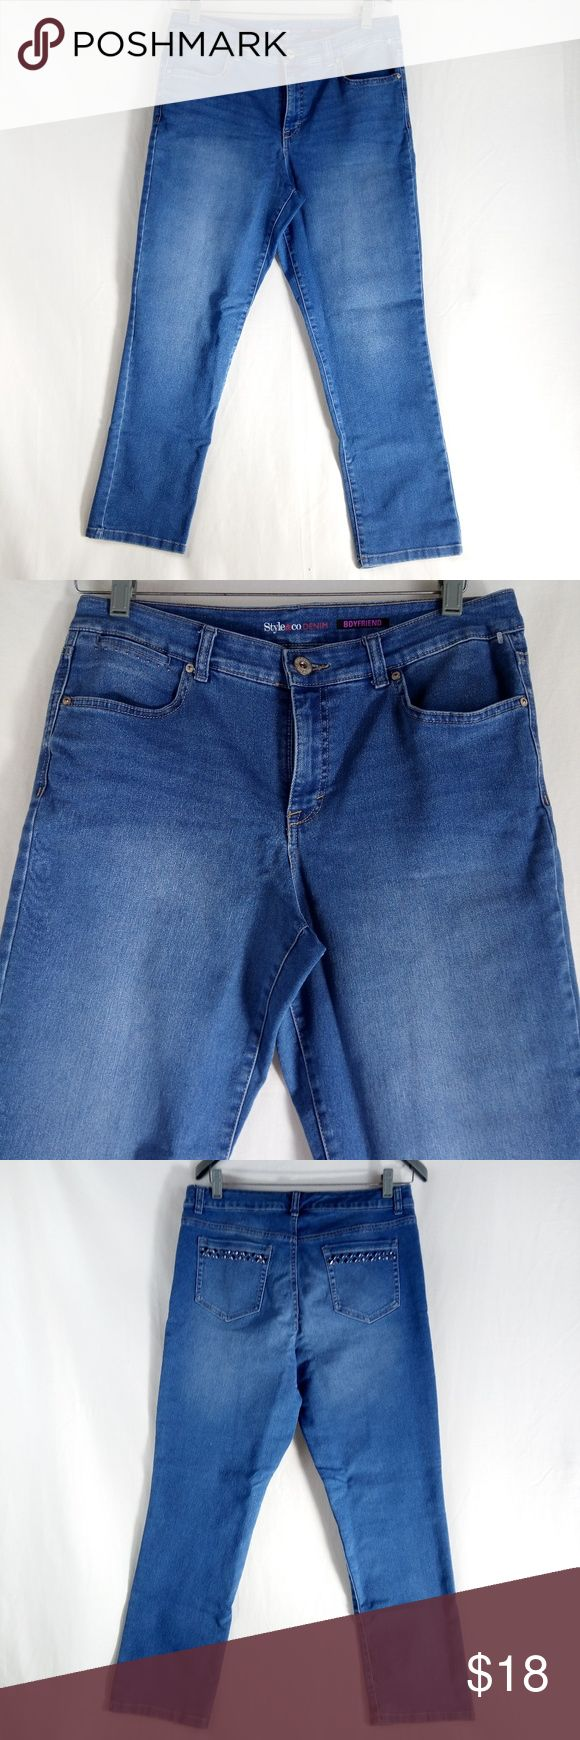 """Style & Co Boyfriend Blue Jeans Size 12 Stretch Clean good condition.  MEASURMENTS::  WAIST: 34""""  HIPS: 19""""  INSEAM: 28""""  Hi! Thank you for shopping with us at Shebrew Trading Store on Poshmark. Please review photos above and measurement details which will answer many of your sizing questions. If you still have a question, please contact us and we will be very happy to assist you further.   We ship same day or next business day, so you receive your purchase as quickly as possible. We hope to…"""